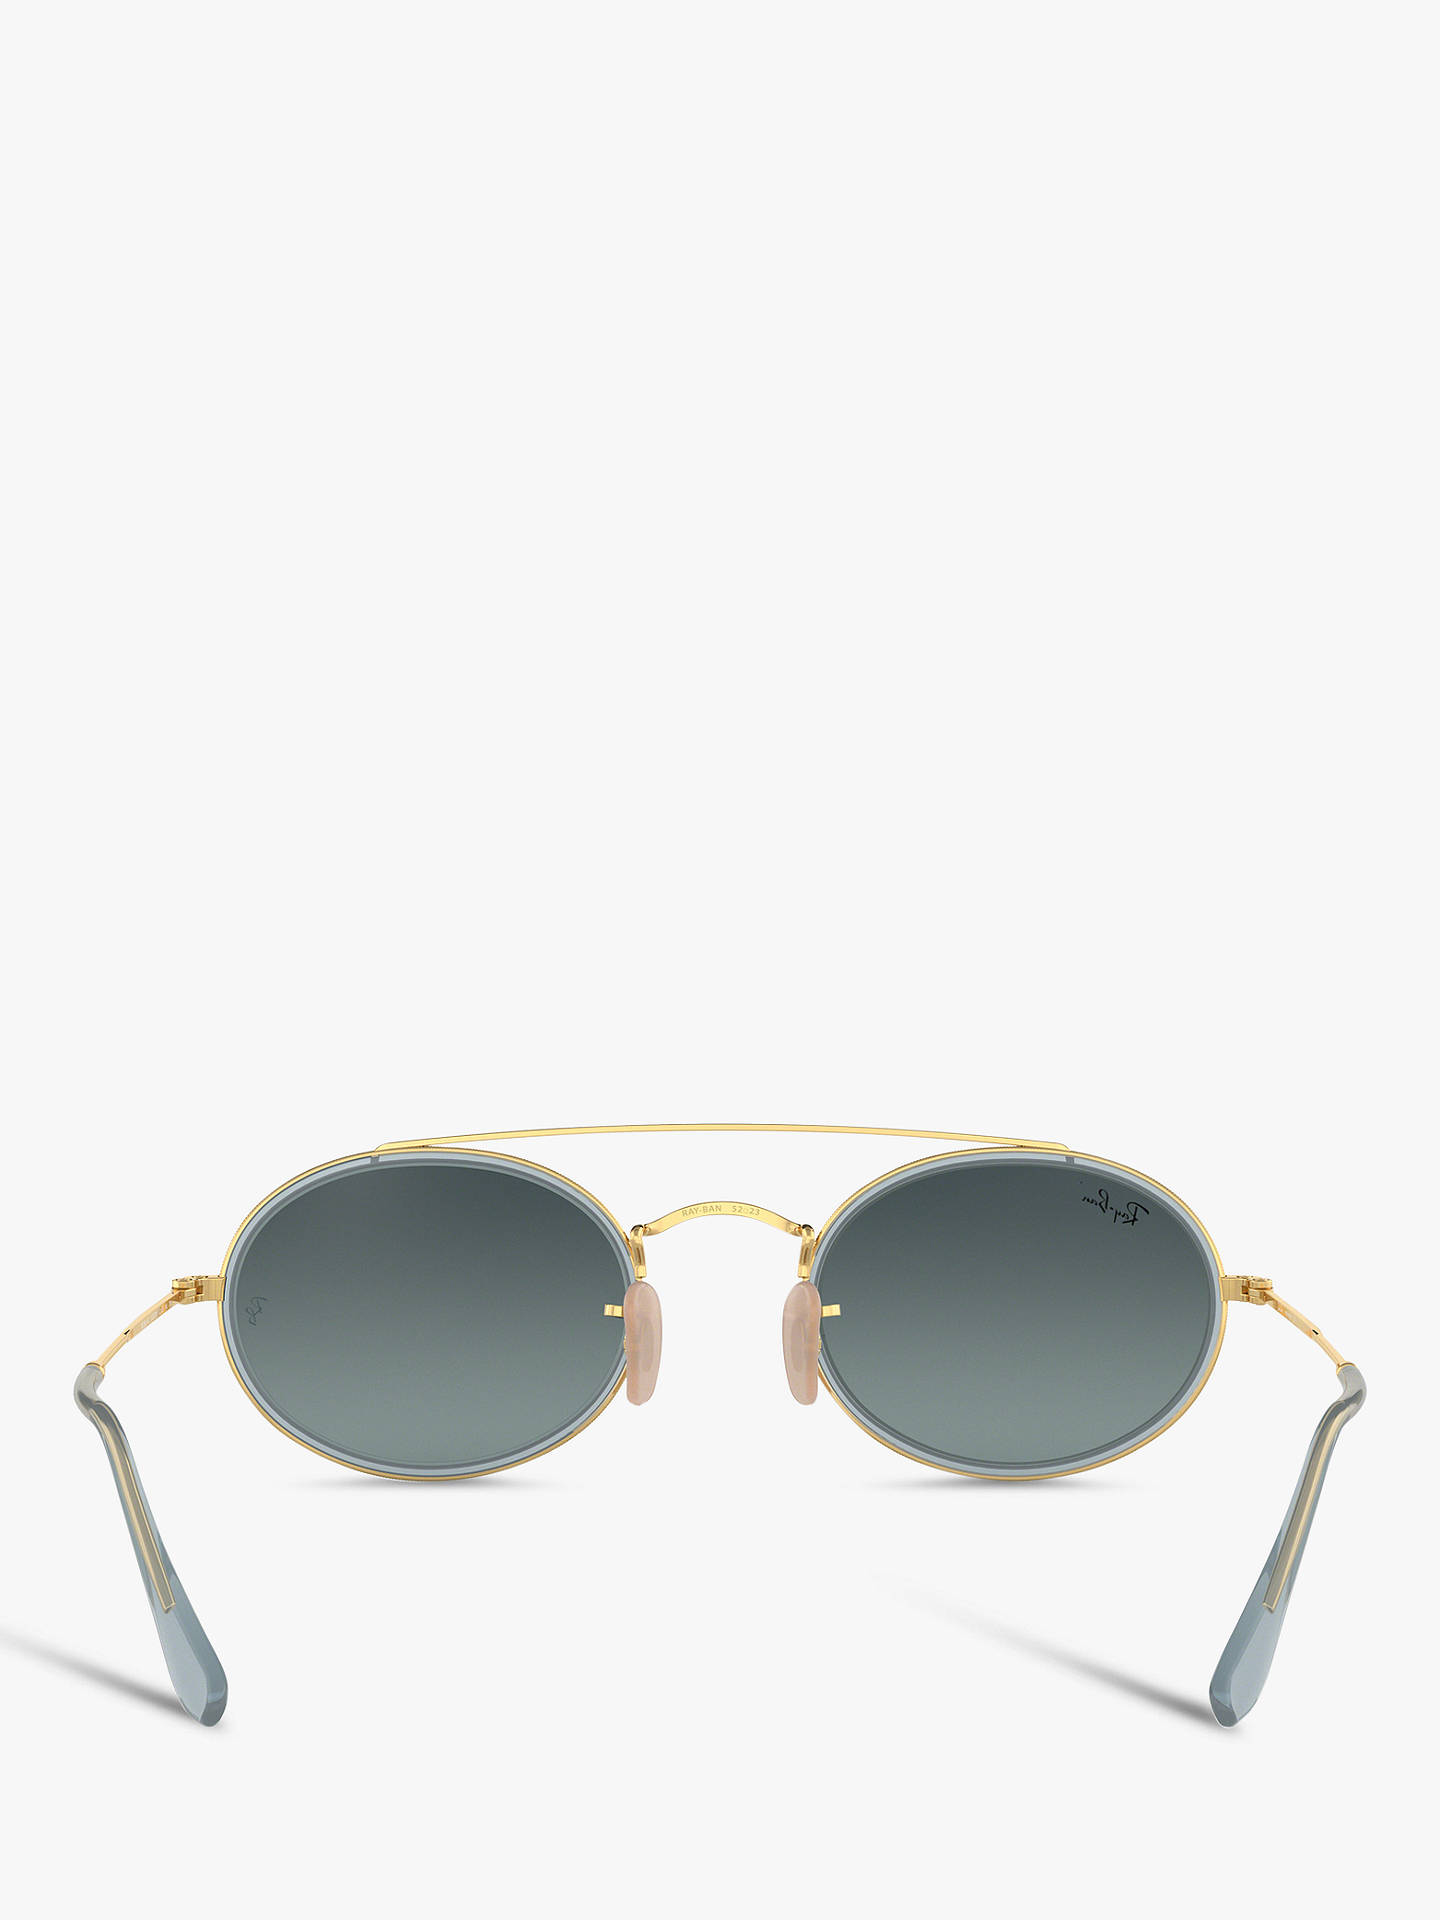 BuyRay-Ban RB3847N Women's Oval Sunglasses, Gold/Grey Blue Gradient Online at johnlewis.com